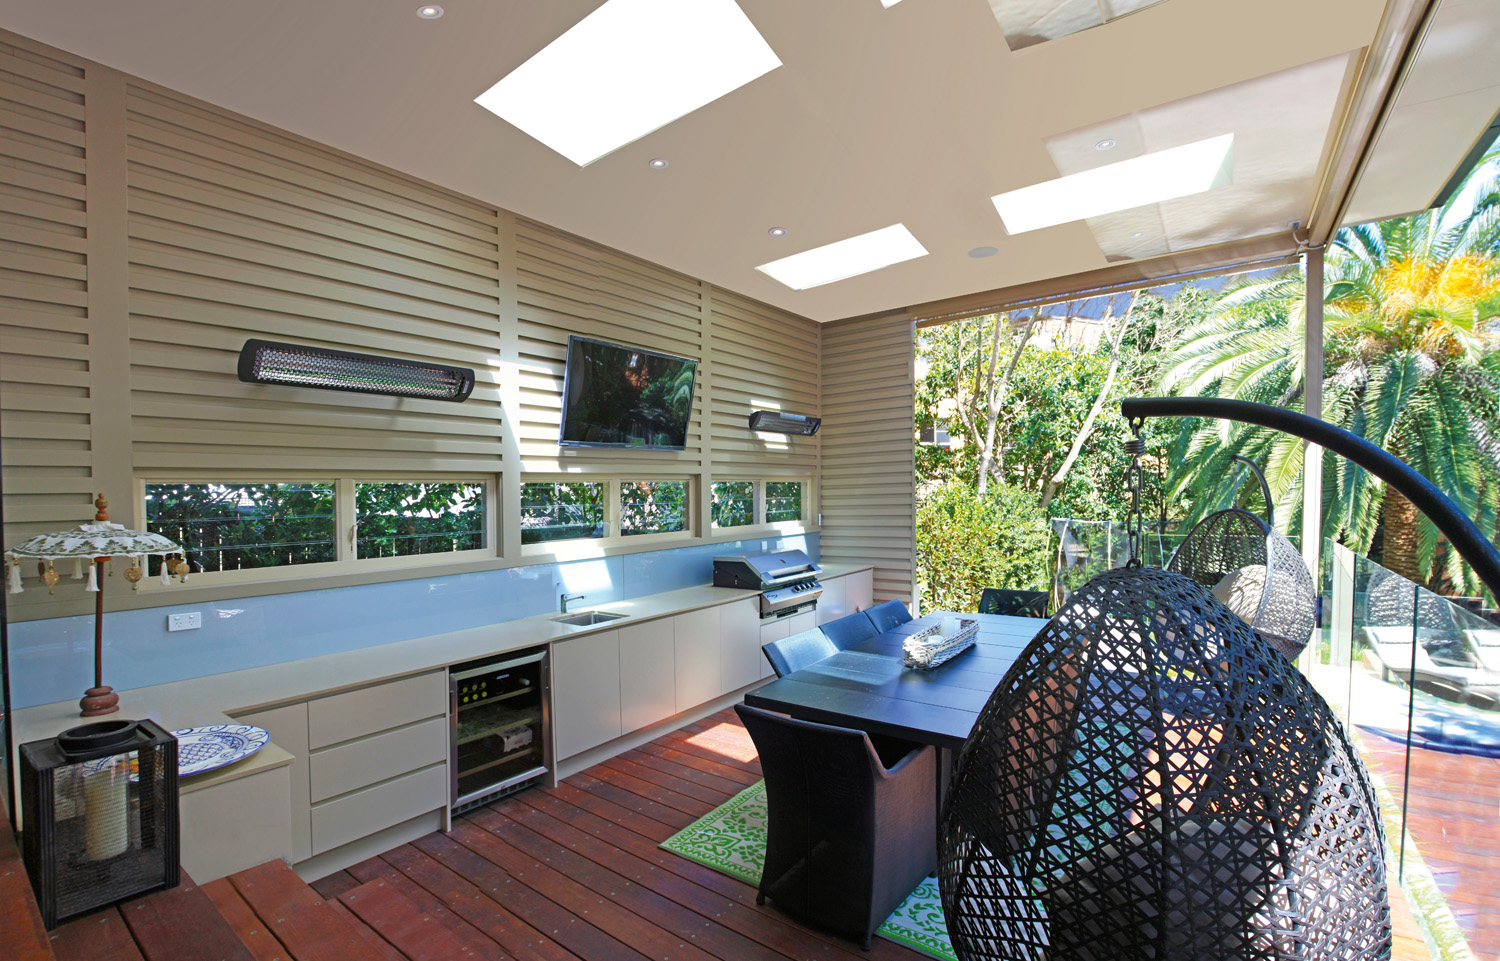 Outdoor Kitchen and balcony deck space